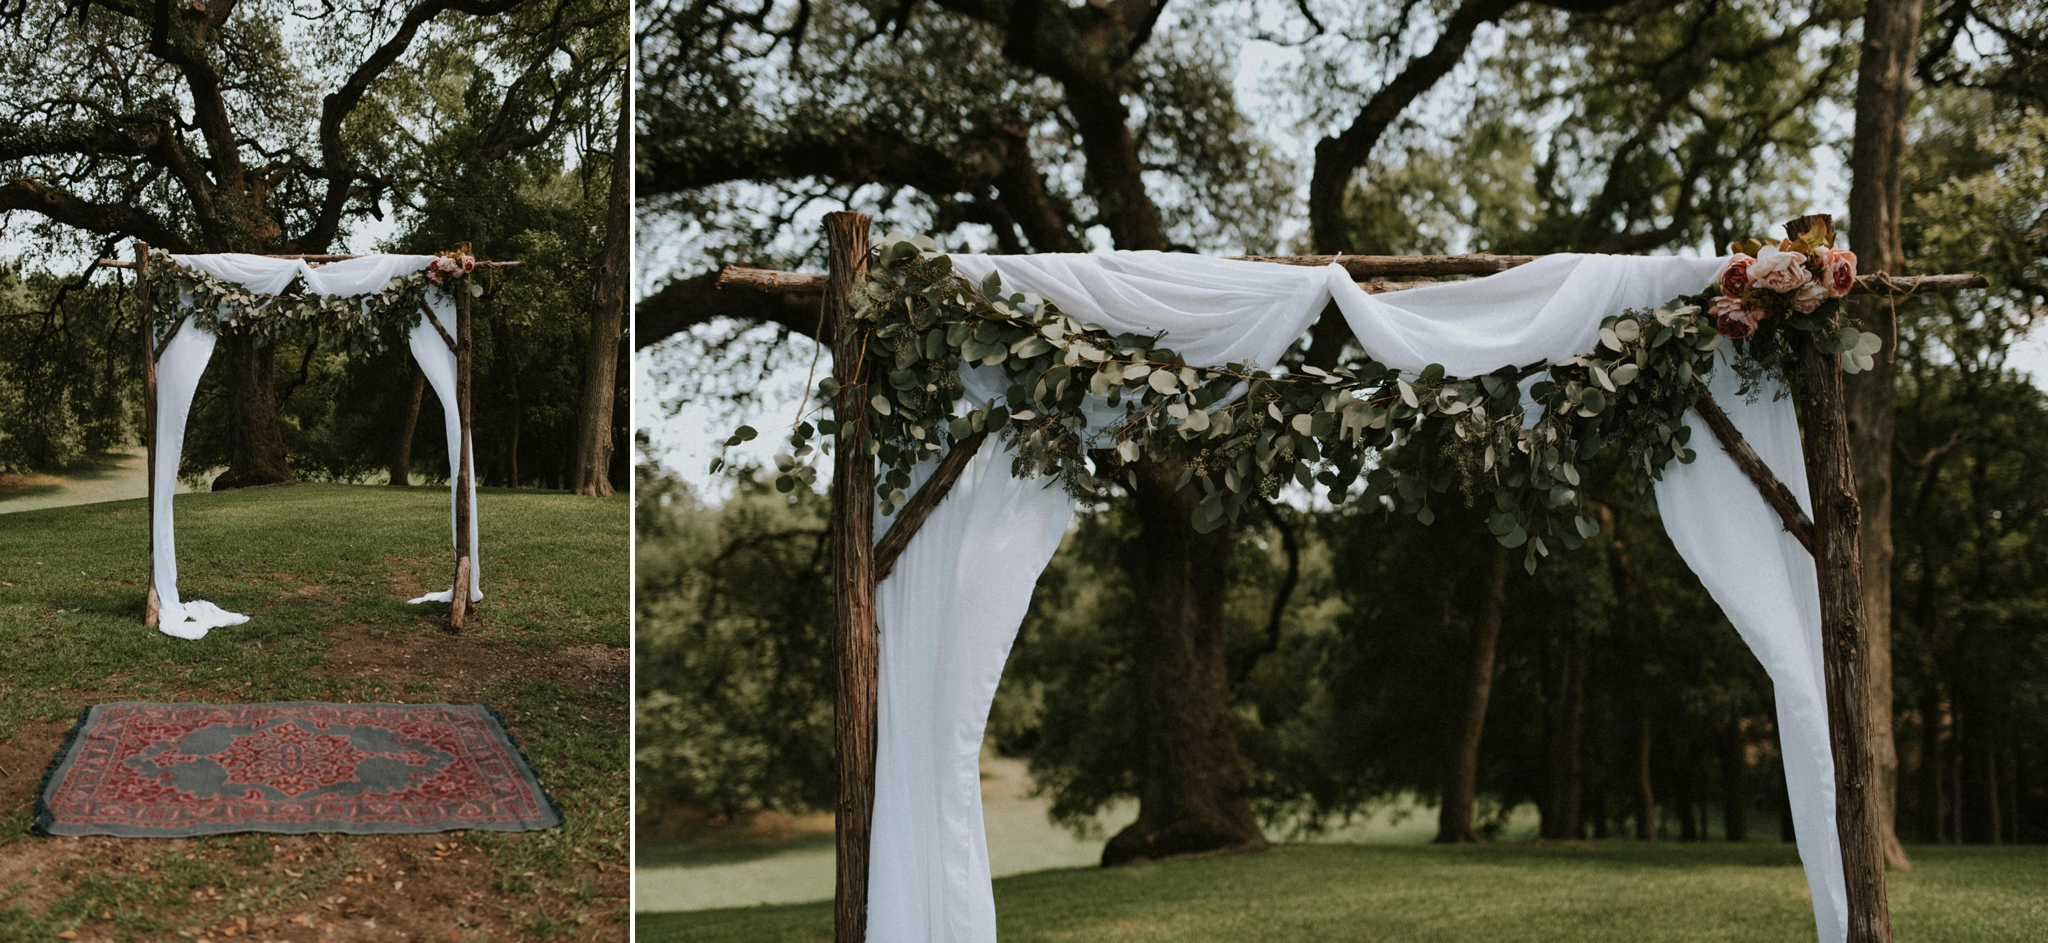 Intimate-Cathedral-Oaks-Wedding-Green-Oak-Forest-Floral-Archway-Kerlyn-Van-Gelder-Photography-Austin-Wedding-Photographer